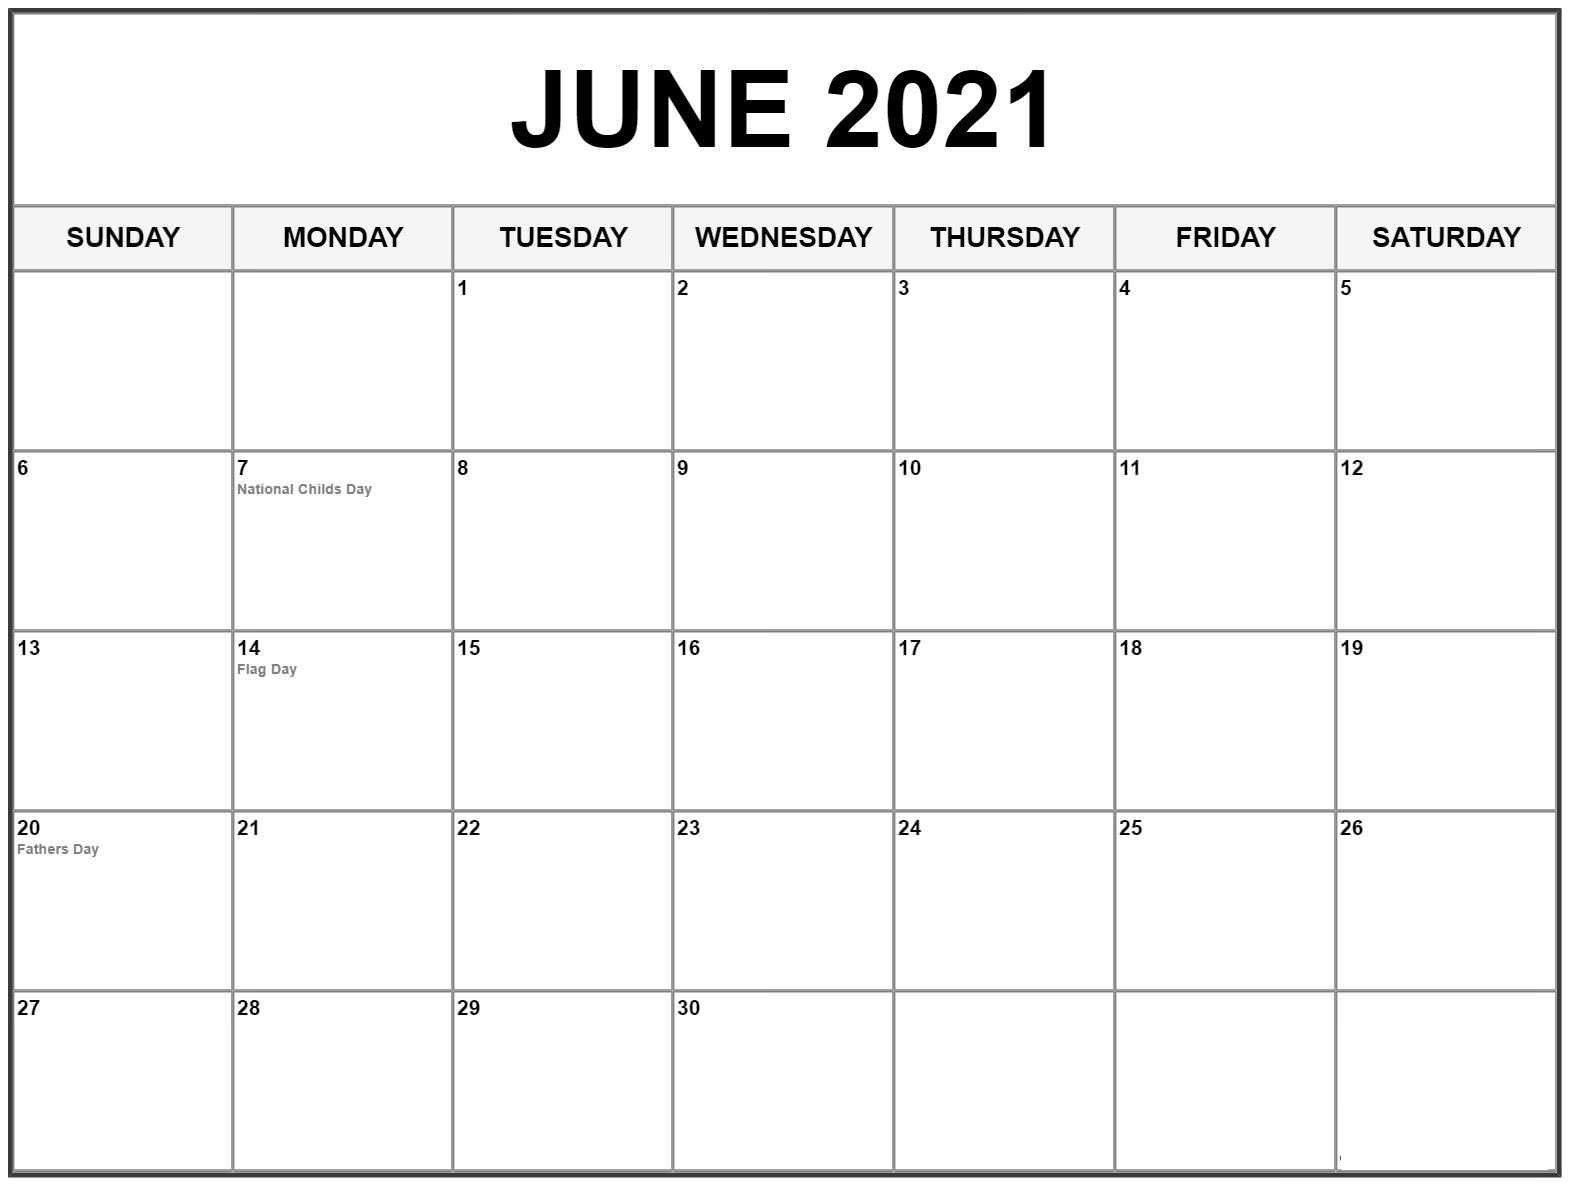 Excel June 2021 Calendar With Holidays